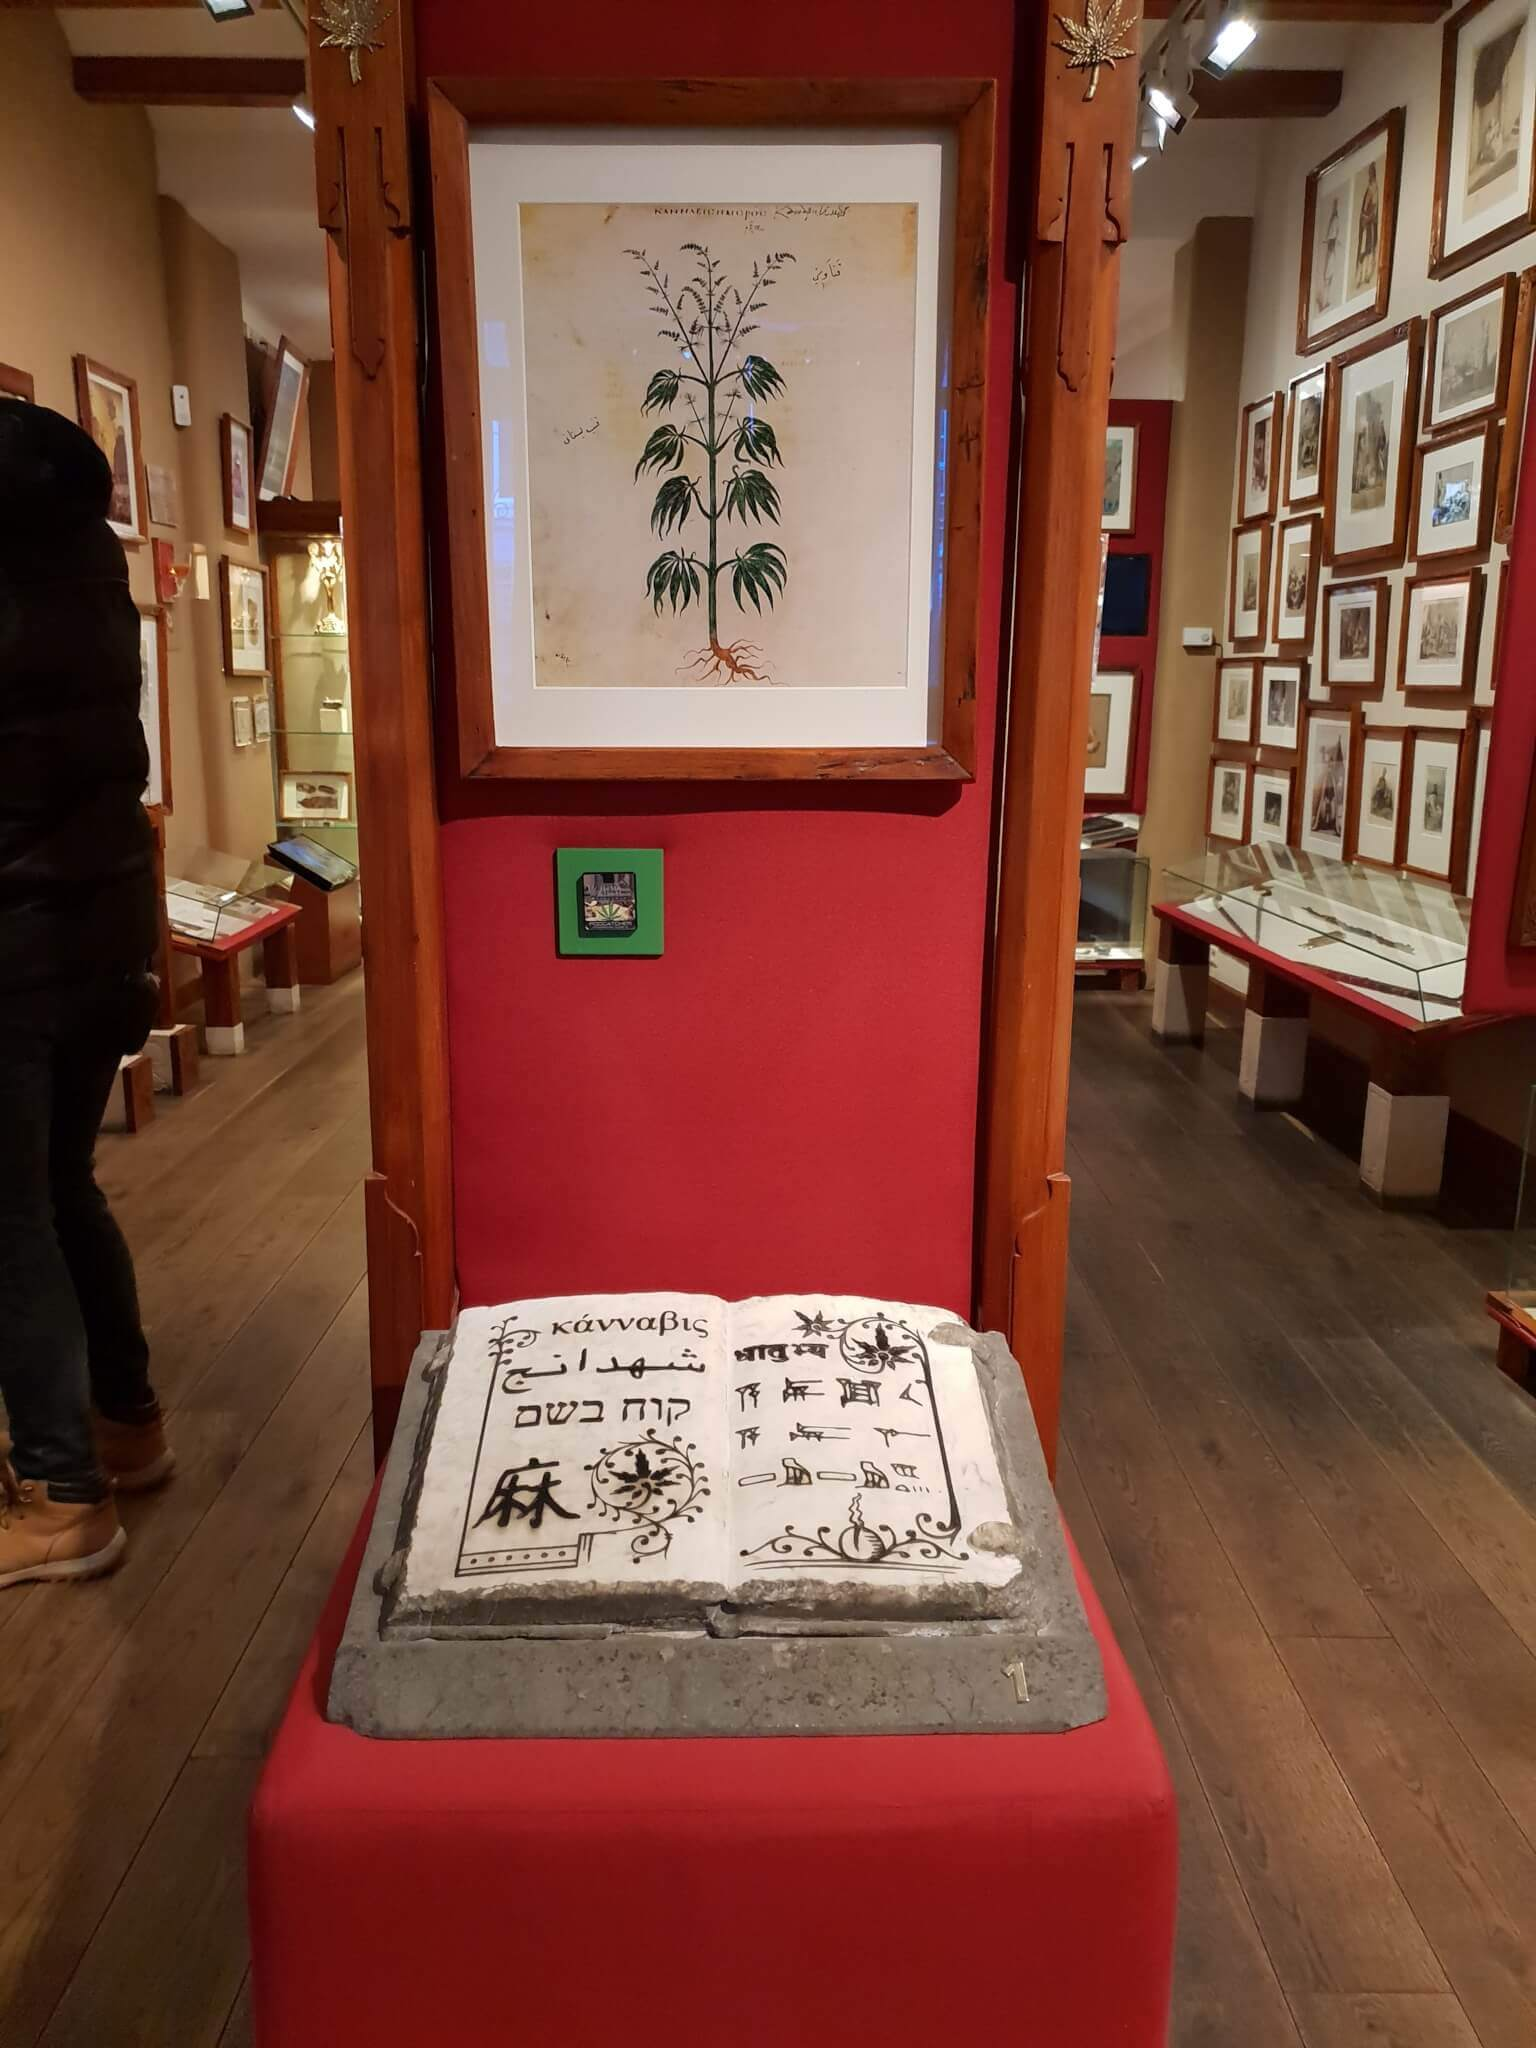 First written account of the marijuana plant in history at the Hash Marihuana Museum Amsterdam